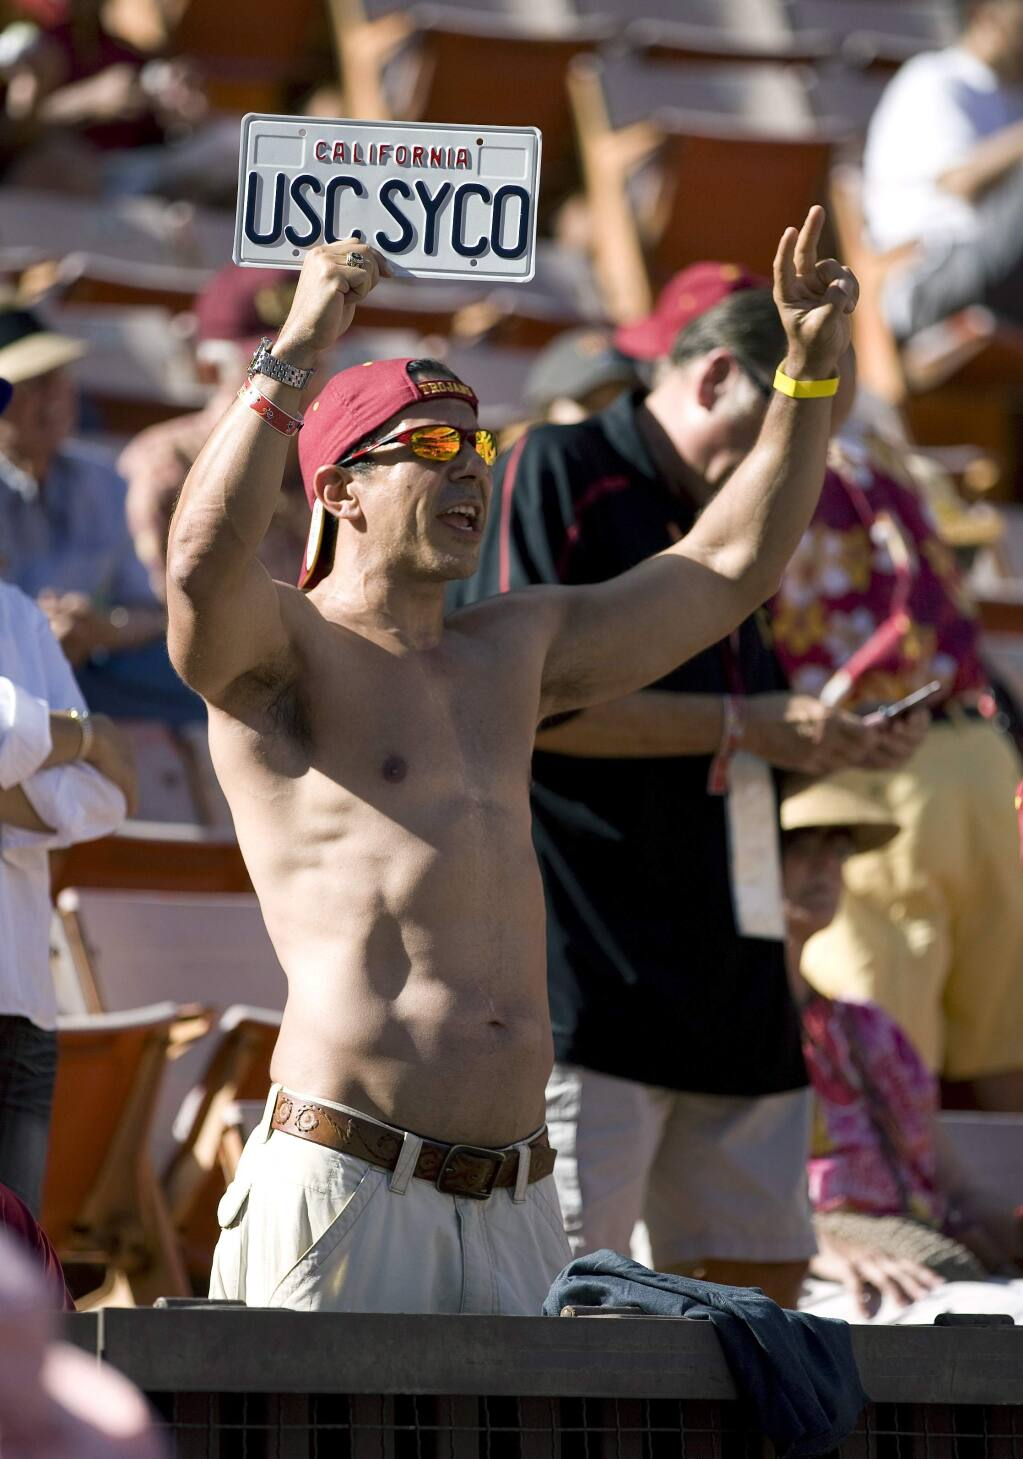 FILE - In this Sept. 2, 2010 file photo Roy Nwaisser, of Los Angeles, cheers during an NCAA college football game between the University of Southern California and Hawaii at Aloha Stadium in Honolulu. Nwaisser has four degrees from the University of Southern California and is a super fan of its storied football squad - he hasn't missed a home or away game in 27 years. But his devotion has been tested by a series of scandals culminating with the school's starring role in a massive college admissions bribery case that is the latest disgrace threatening to tarnish USC's hard-fought reputation as an academic, as well as athletic, powerhouse. (AP Photo/Eugene Tanner,File)